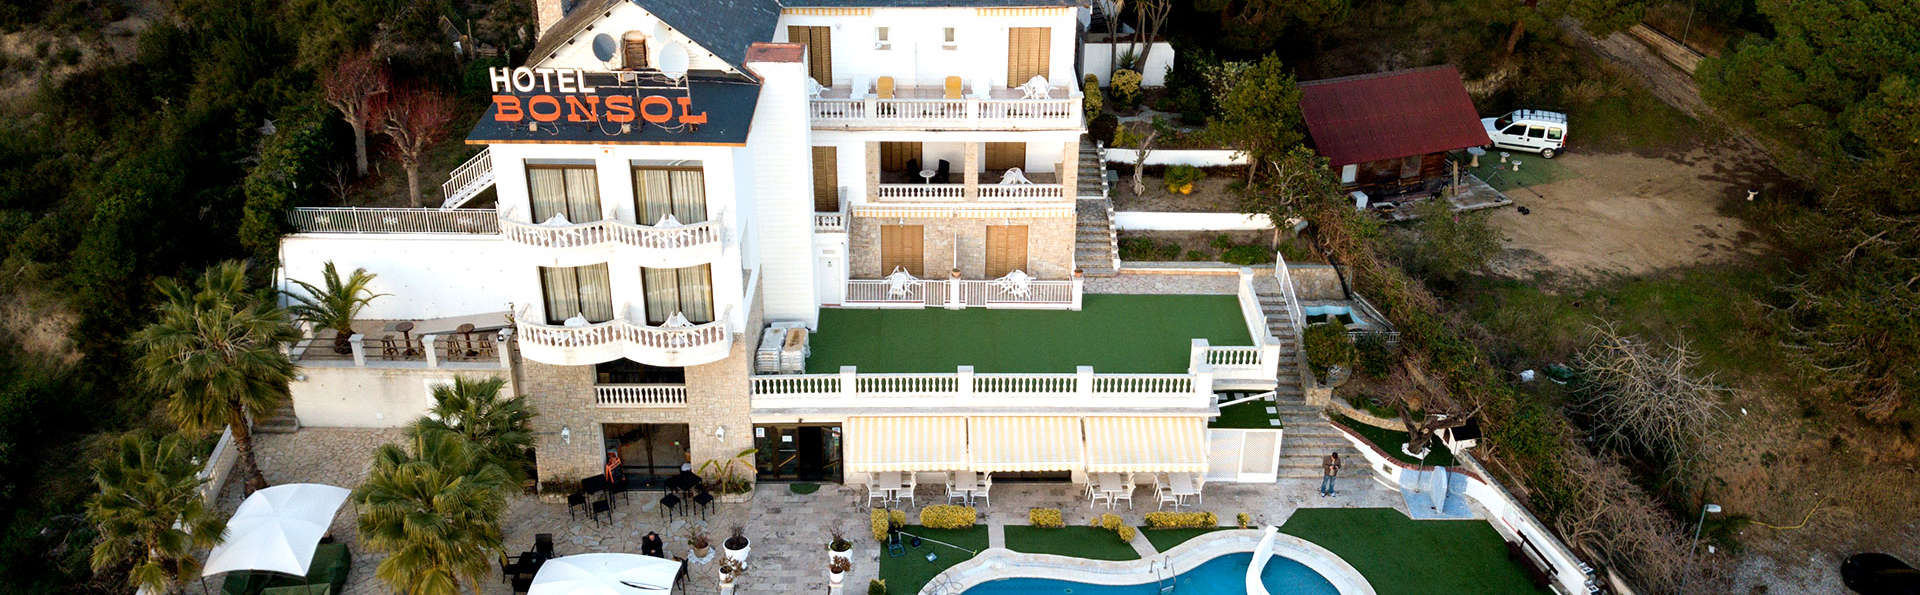 Hotel Bonsol - EDIT_NEW_FRONT.jpg